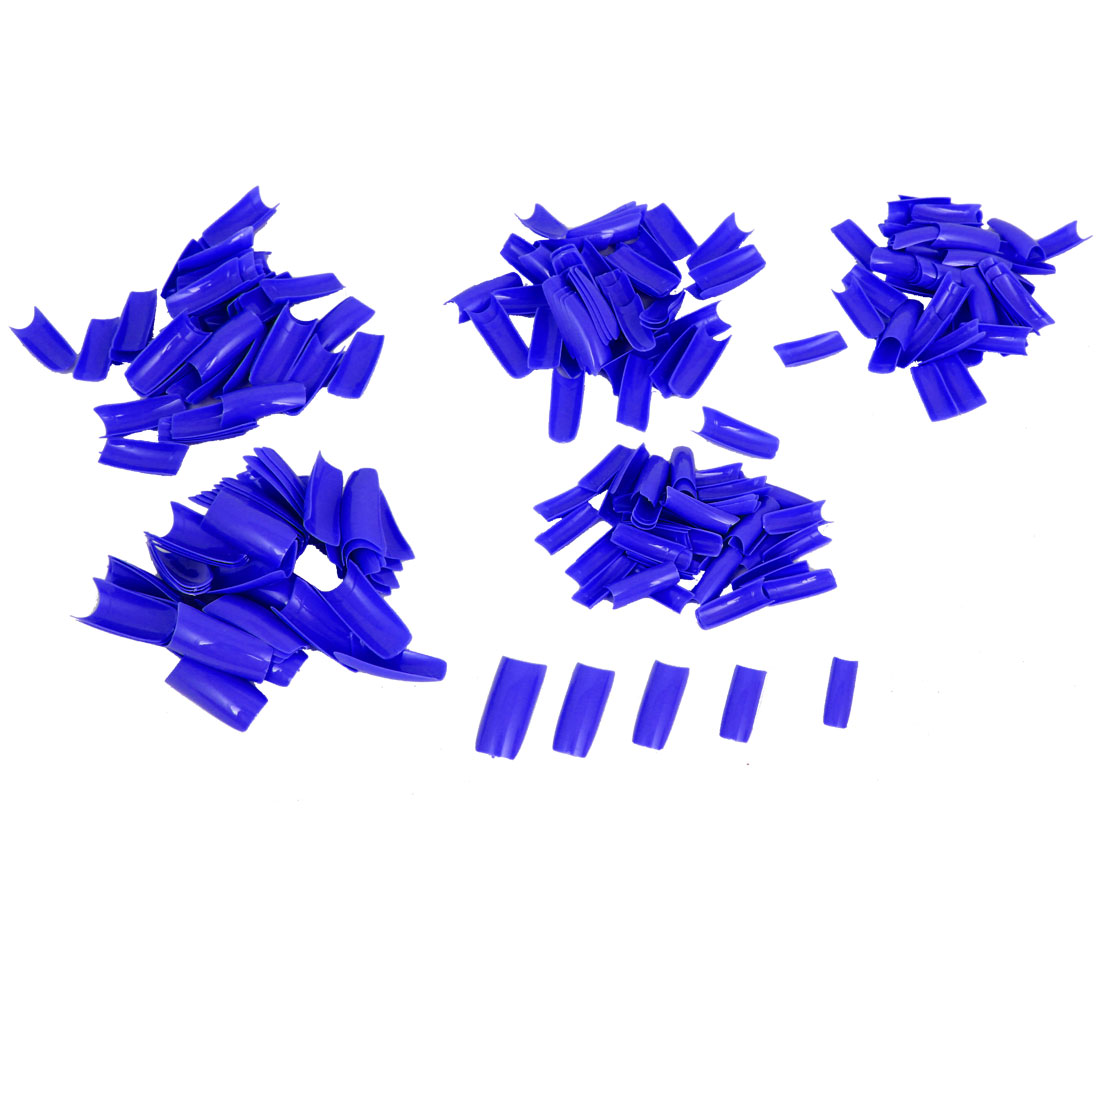 Women Dark Blue Plastic DIY False Nail Art Decal Stickers Tip Decoration 250 Pcs